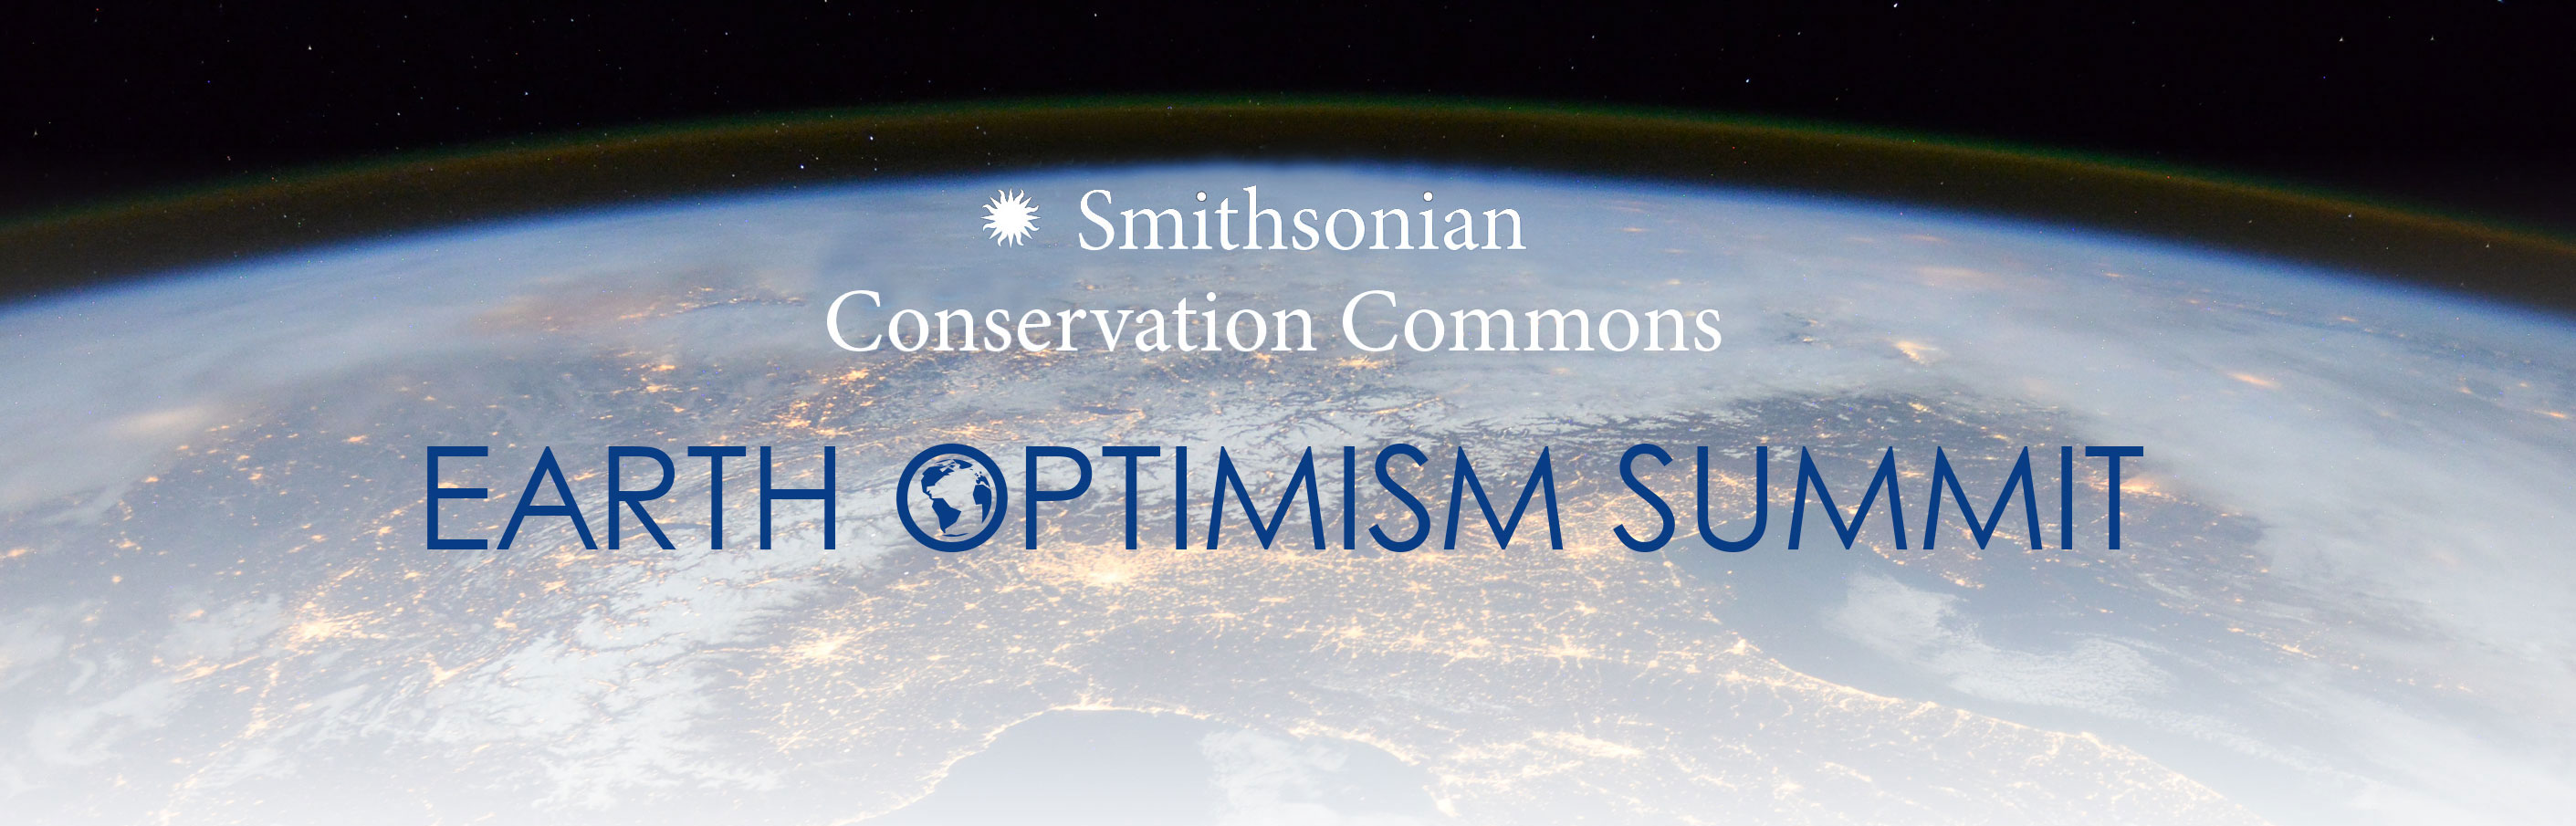 Earth Optimism Summit | World Ocean Radio